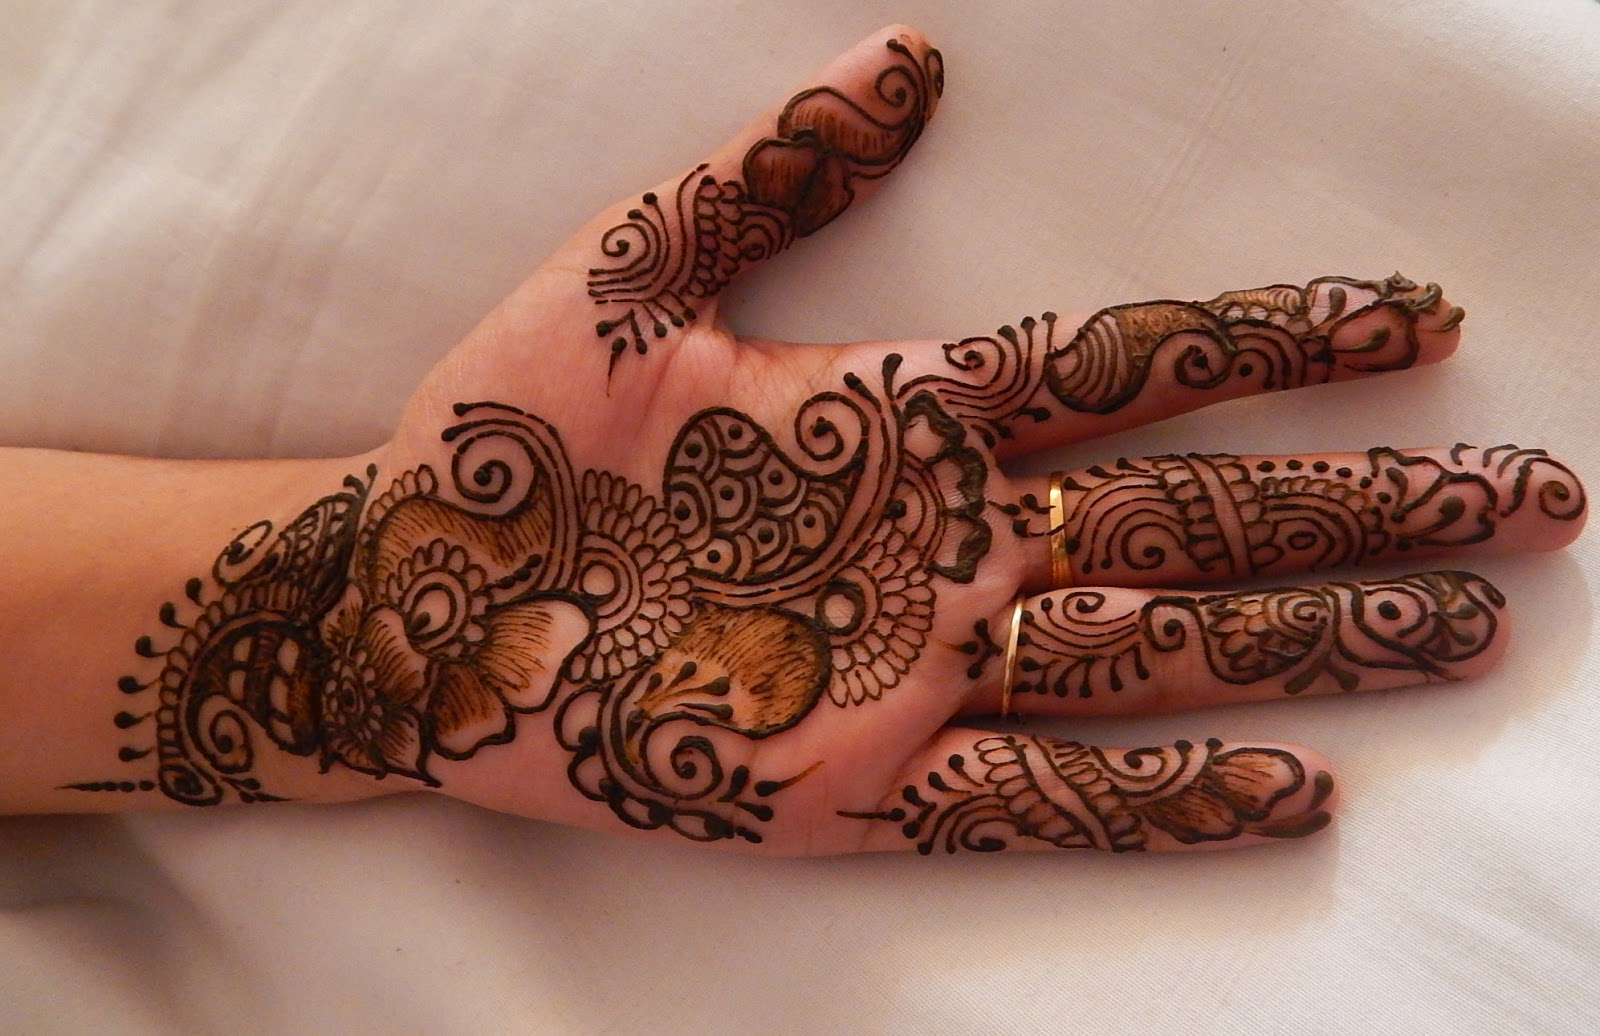 Mehndi Designs For Fingers Step By Step : Get started with mehndi: step by mehndi